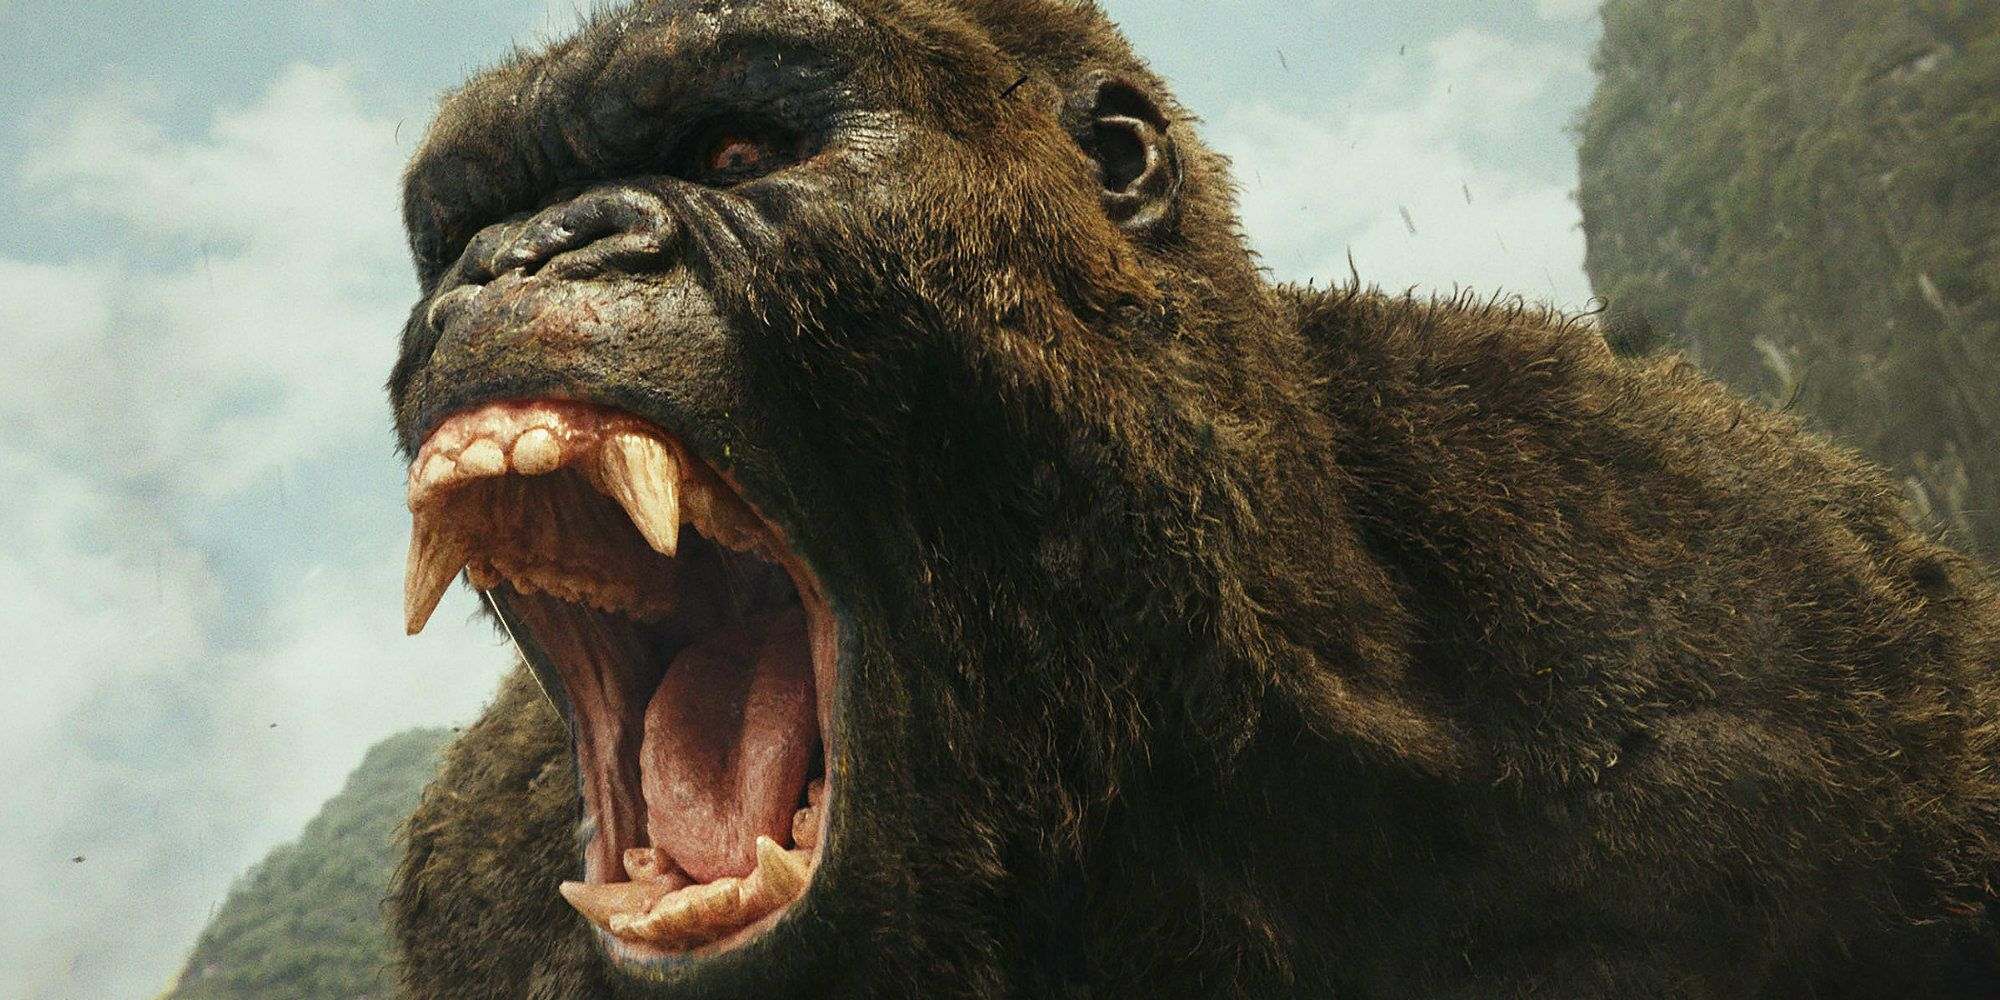 Godzilla vs Kong Toy Confirms The Ape Has A New Weapon